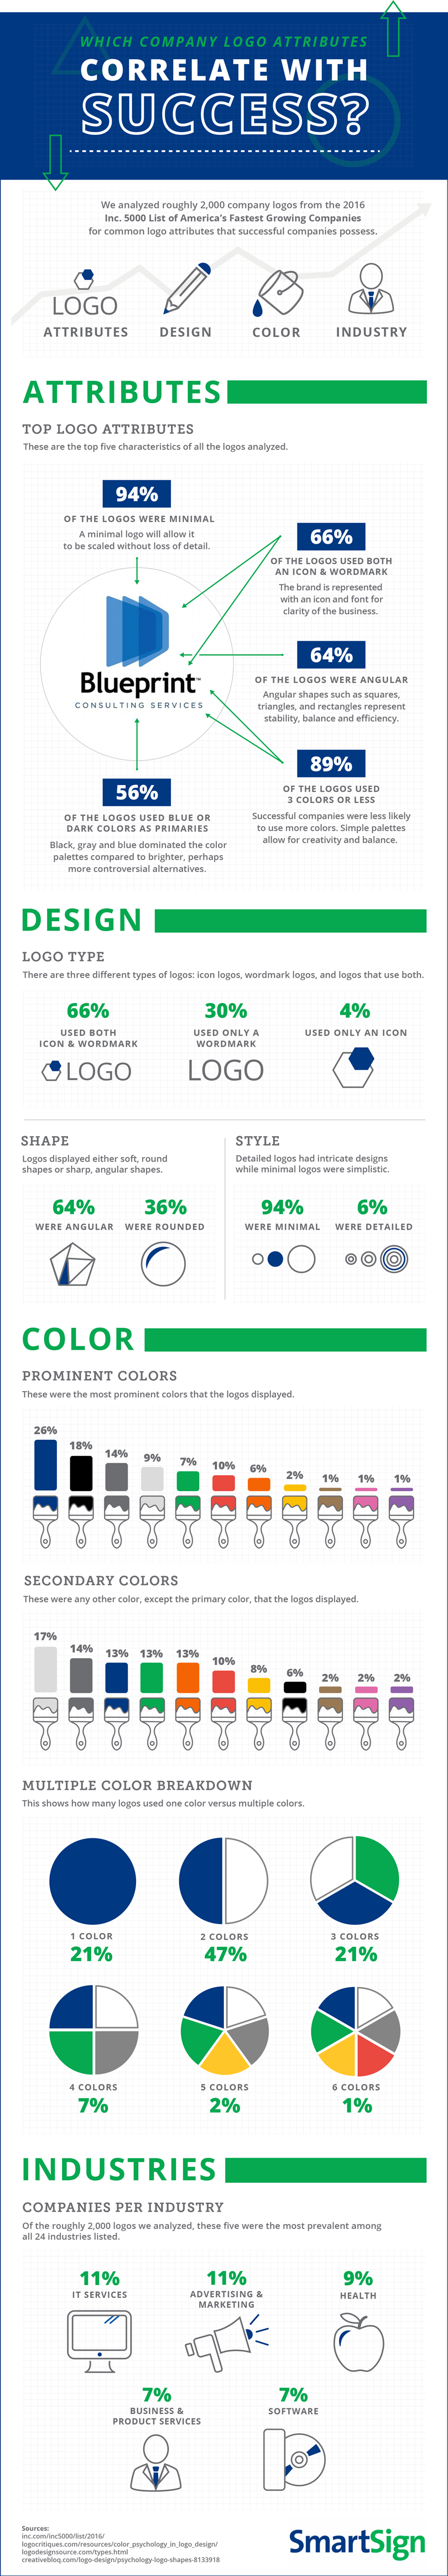 Logo attributes common to successful companies